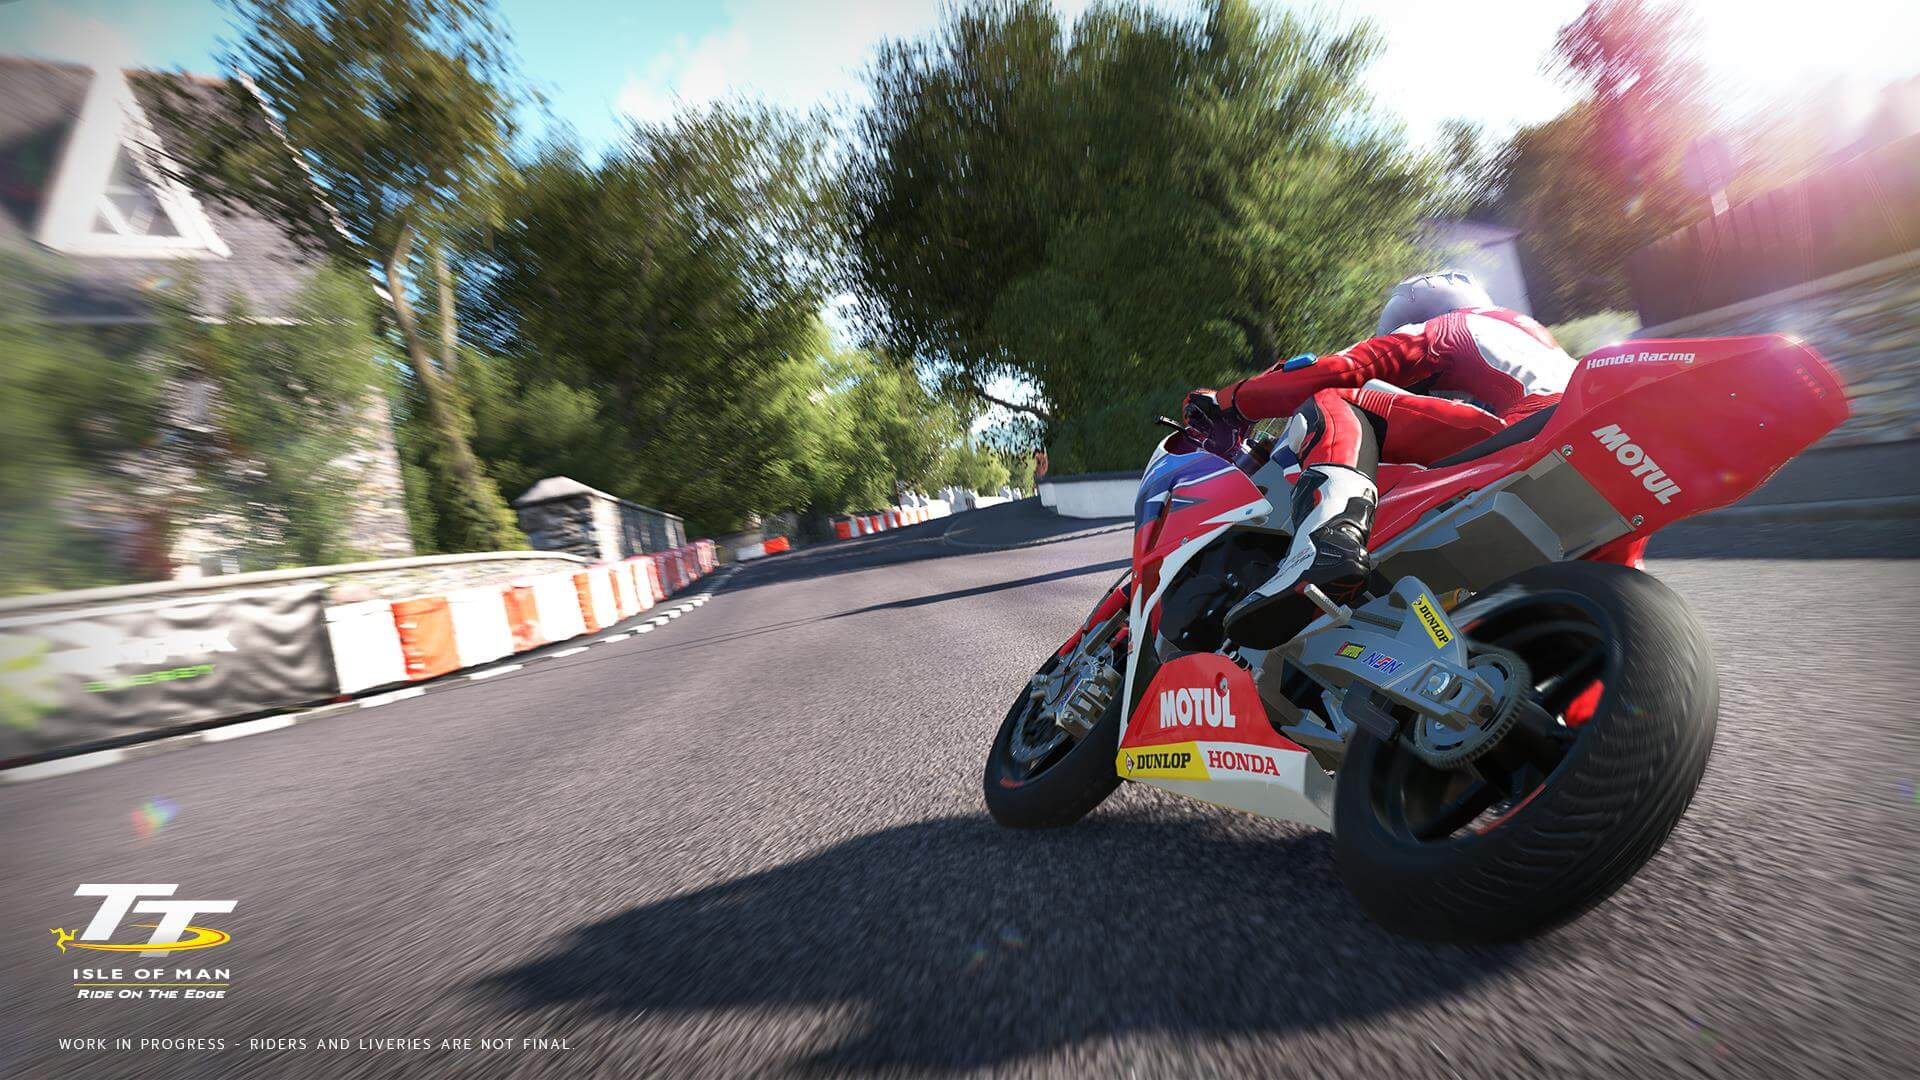 Image result for TT isle of man pc game